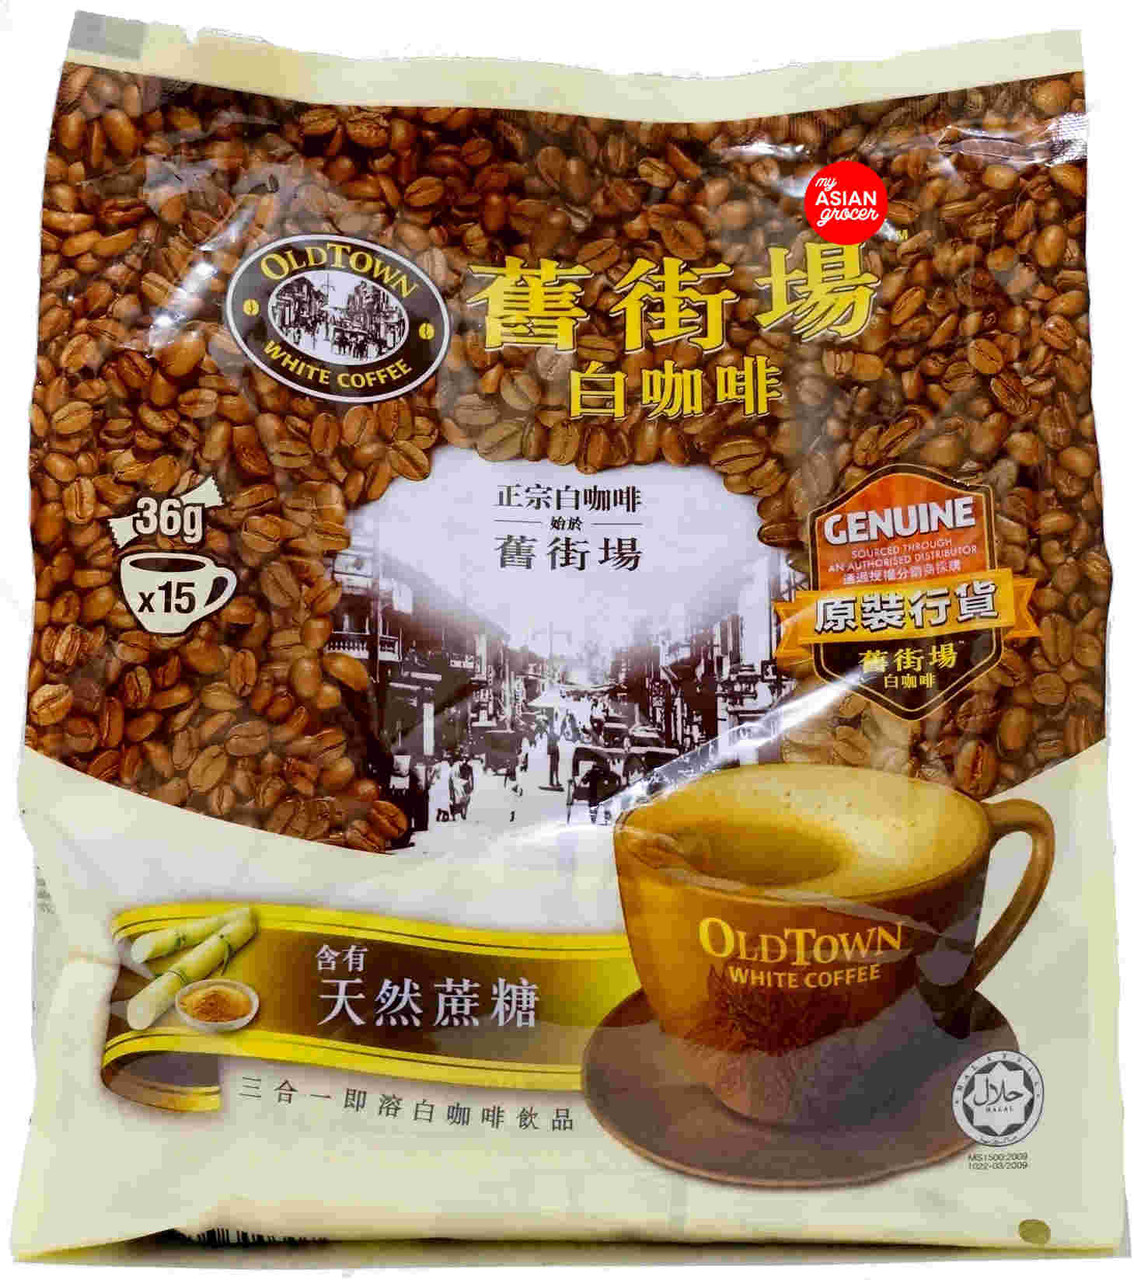 Old Town White Coffee with Natural Cane Sugar 36g x 15 Sticks